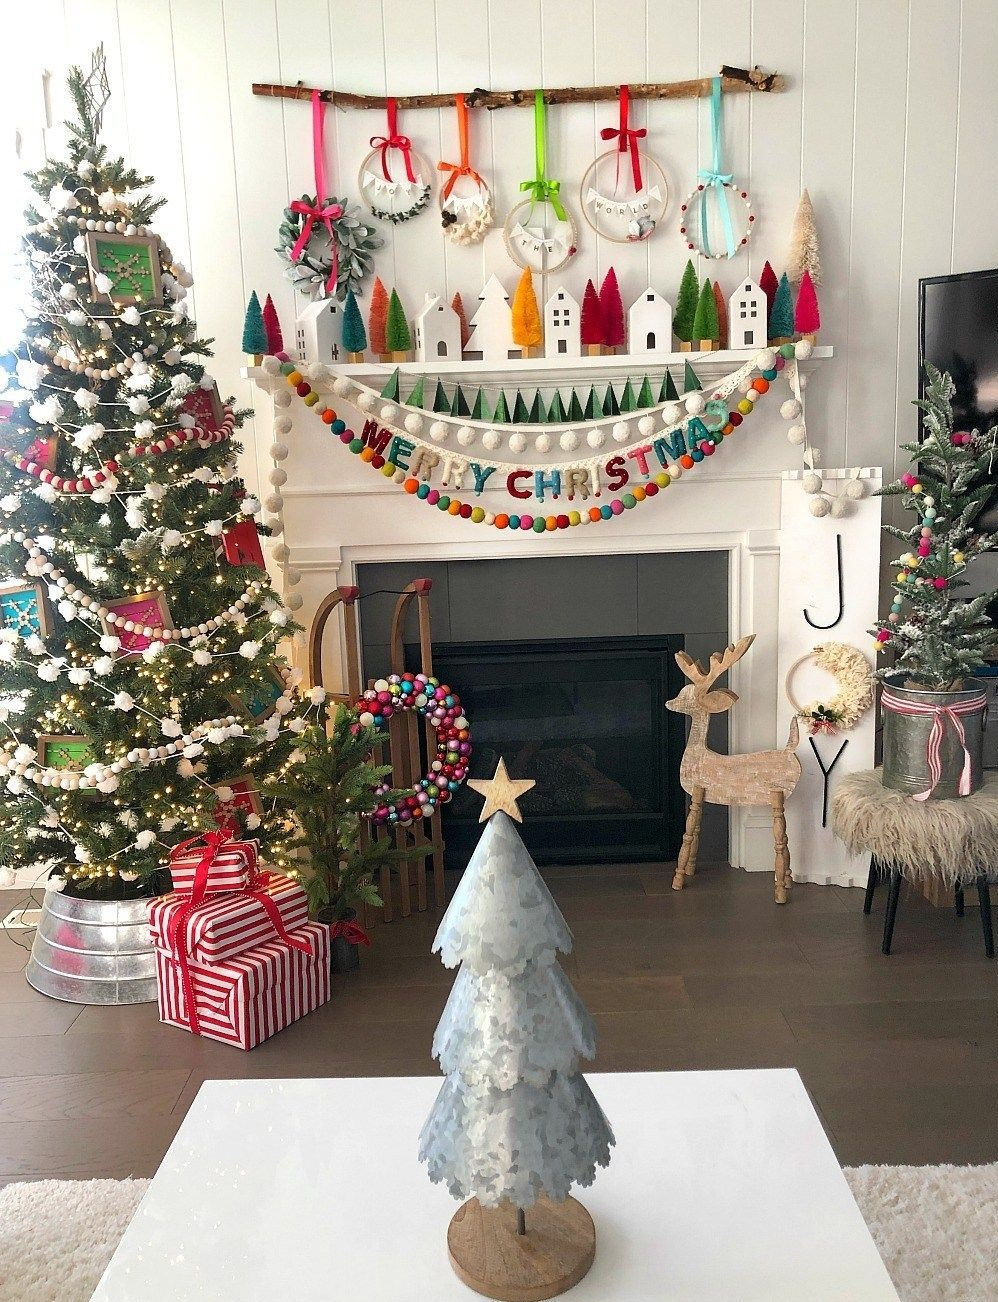 DIY-Christmas-living-room-decorations 70+ Impressive Christmas Decorations to Do Yourself 2020 - 2021